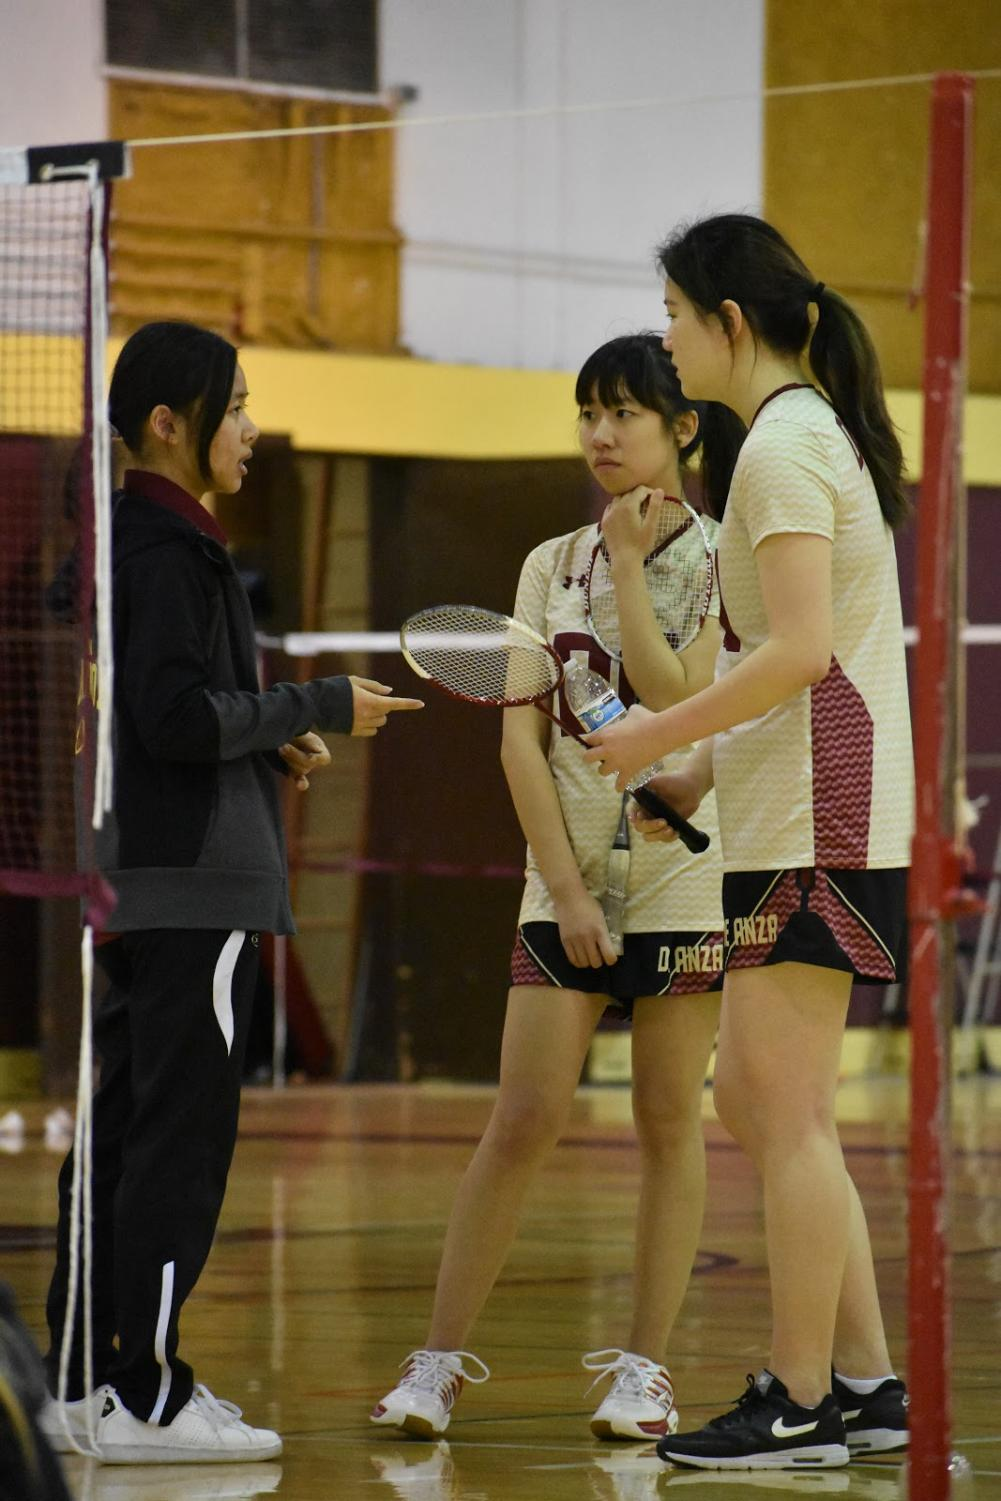 Assistant coach and member of the 2016 and 2017 badminton roster, Yu Hsuan